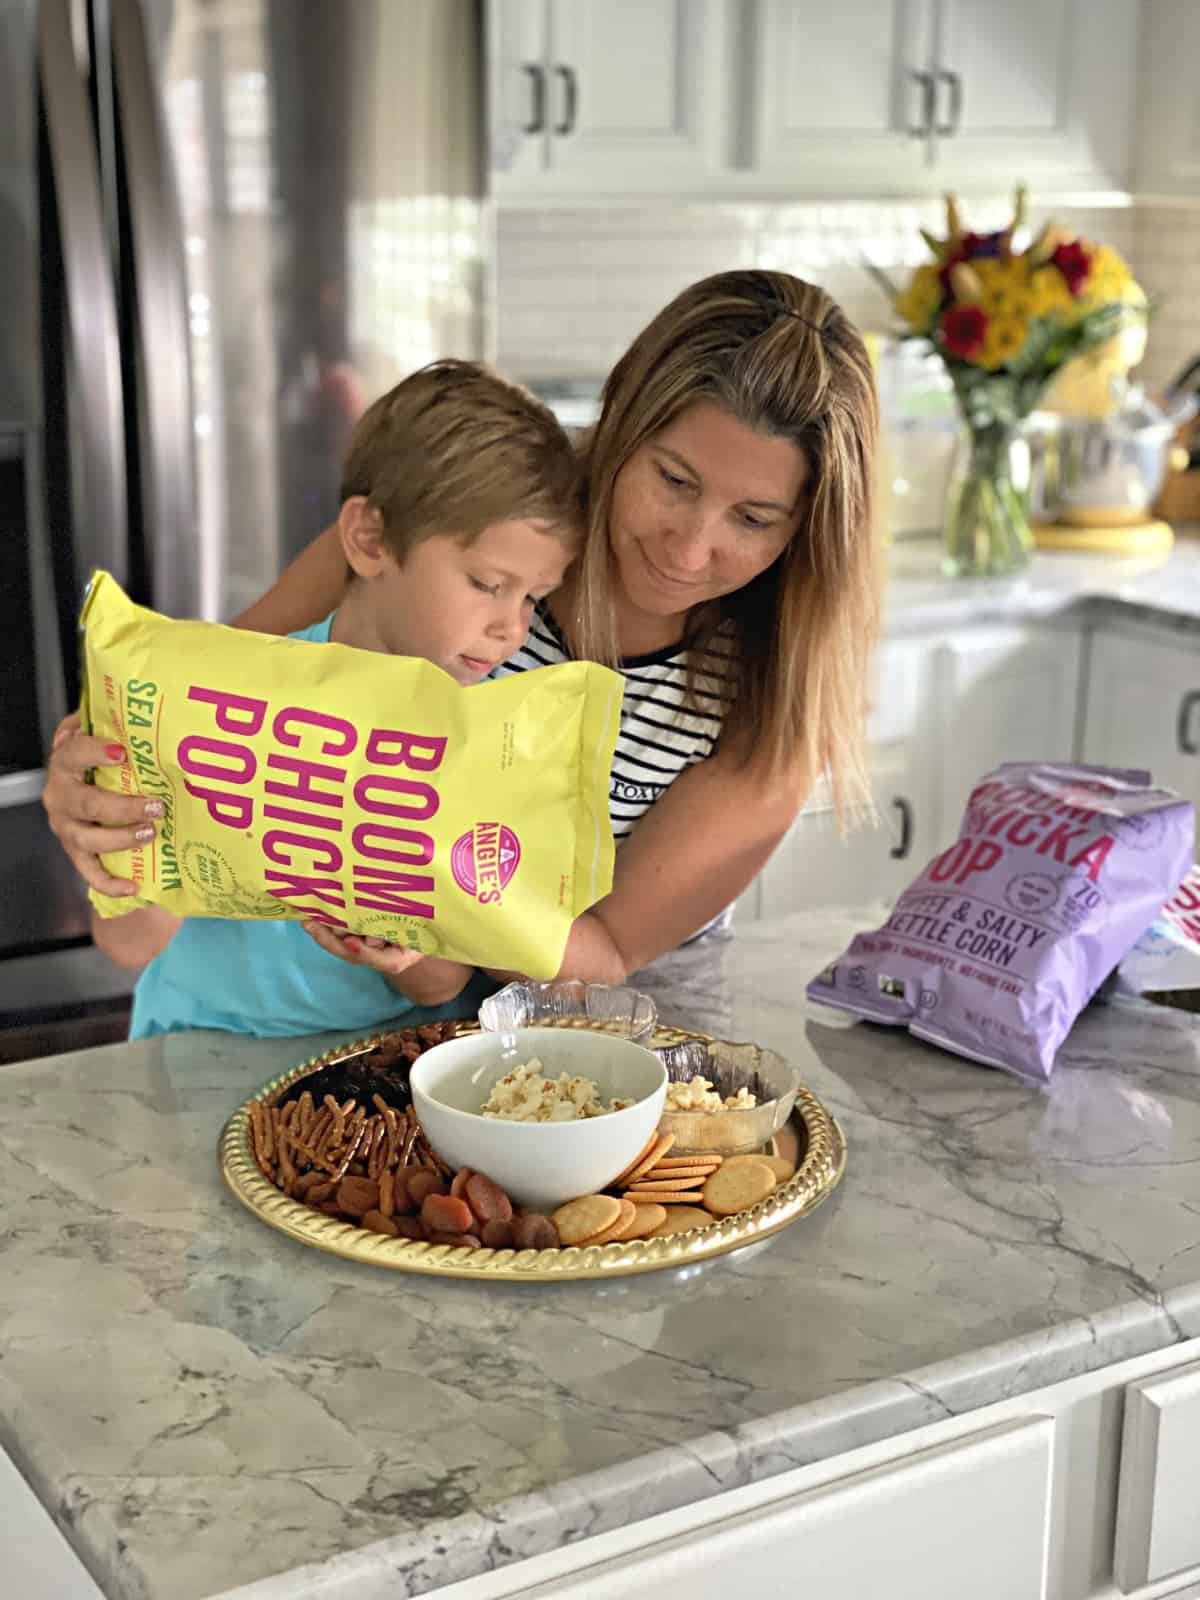 Mother and Son at kitchen counter putting together Snack Board by adding popcorn.